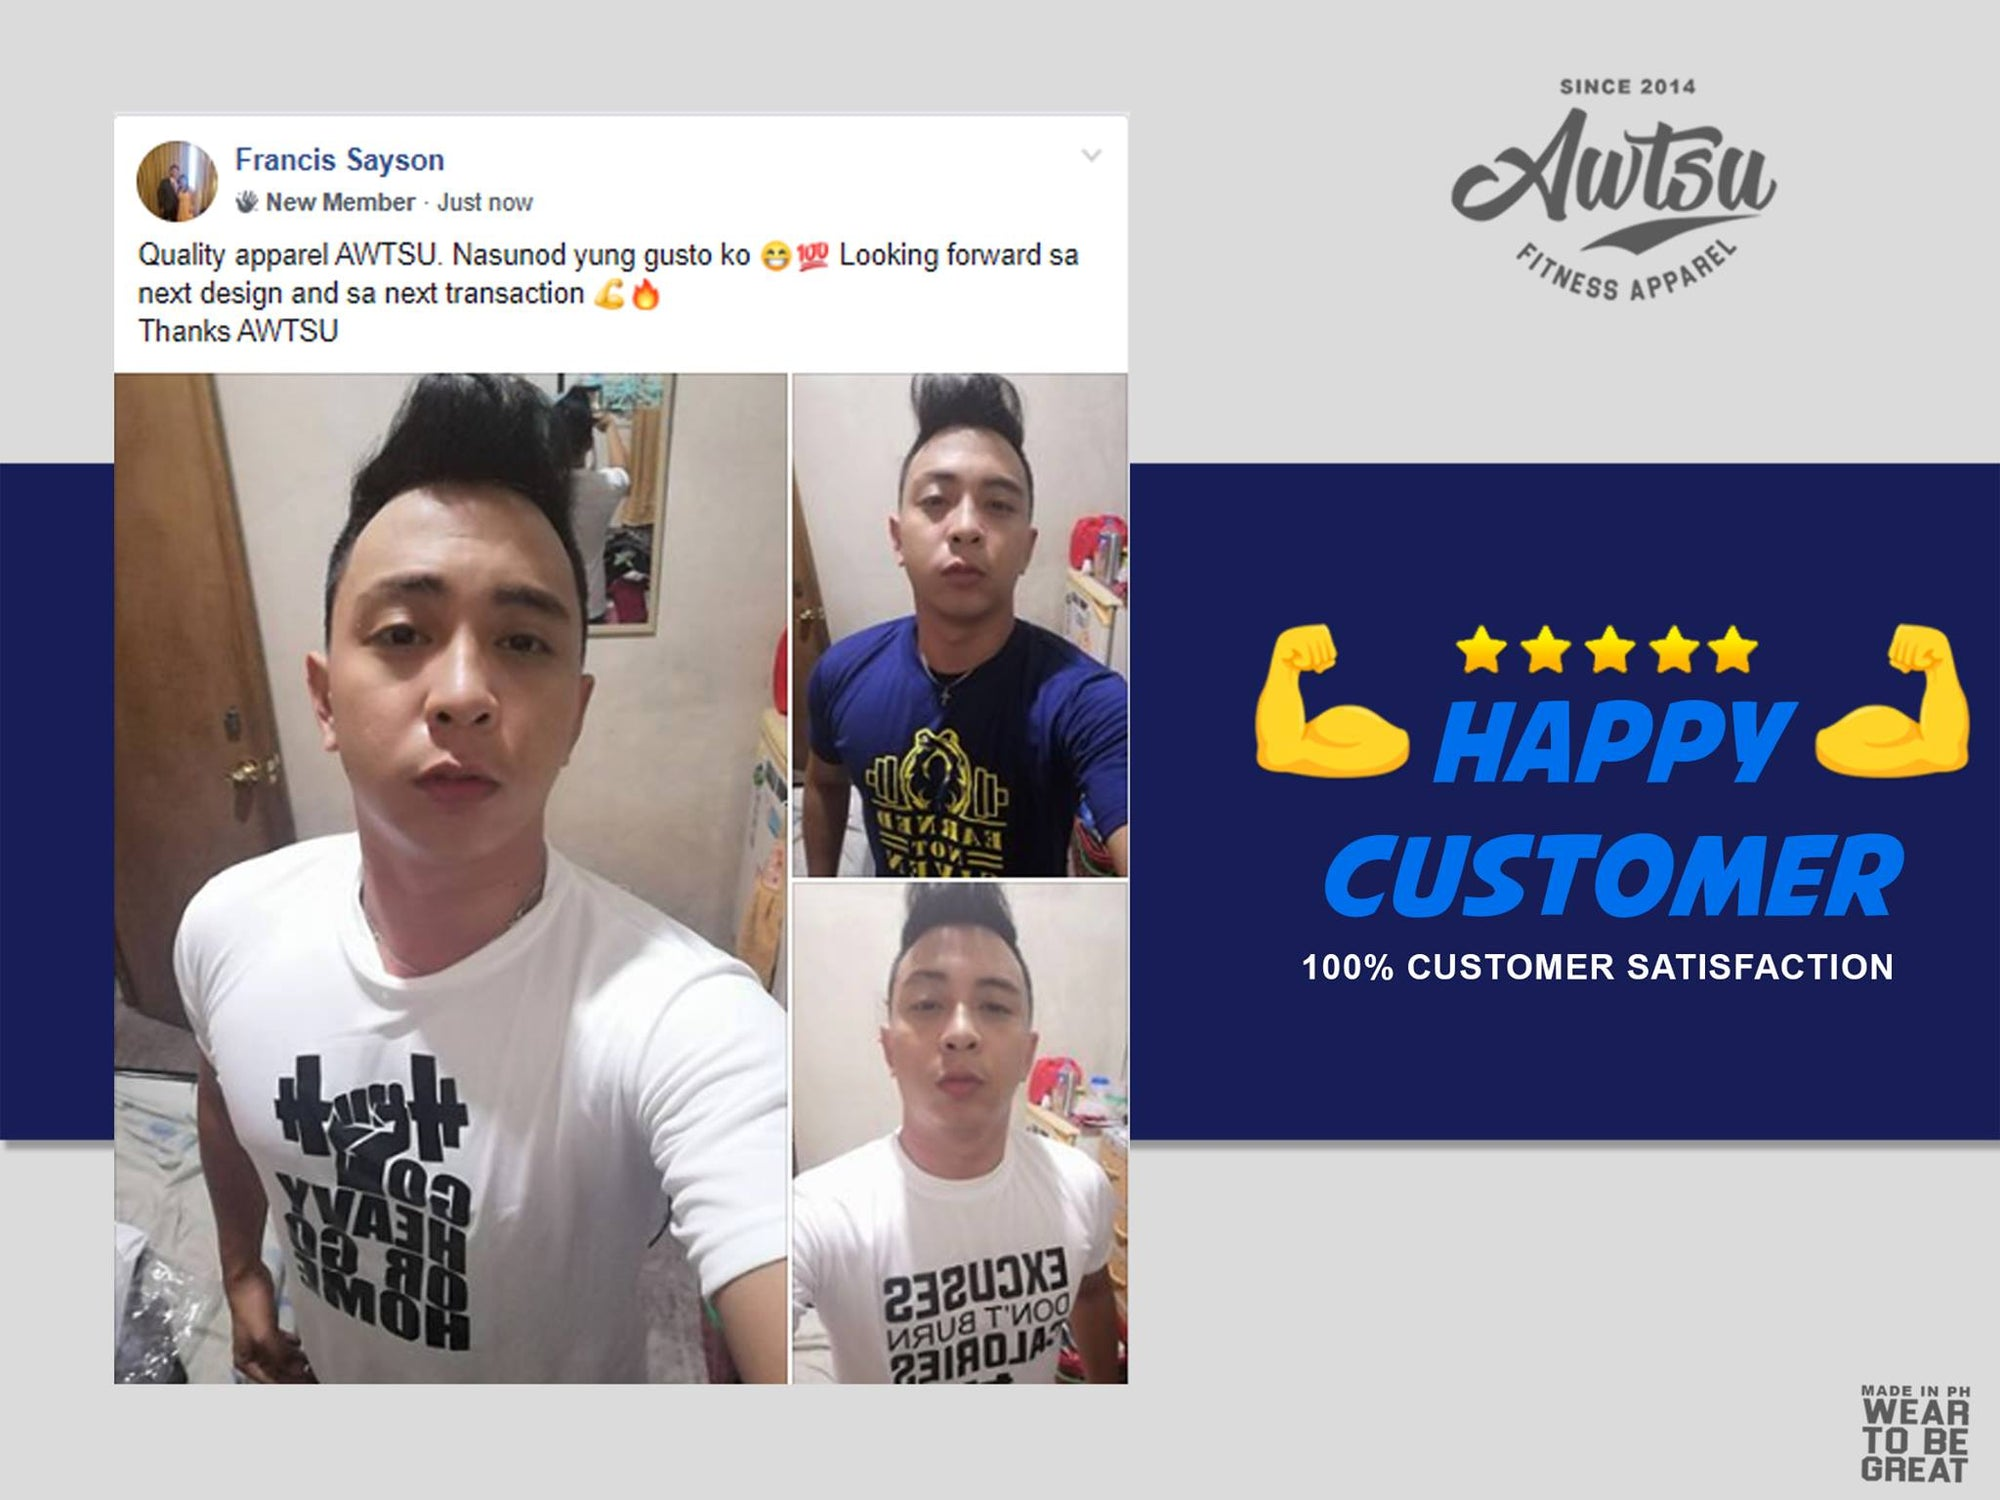 Francis Sayson 5 Star Review of Awtsu Fitness Apparel